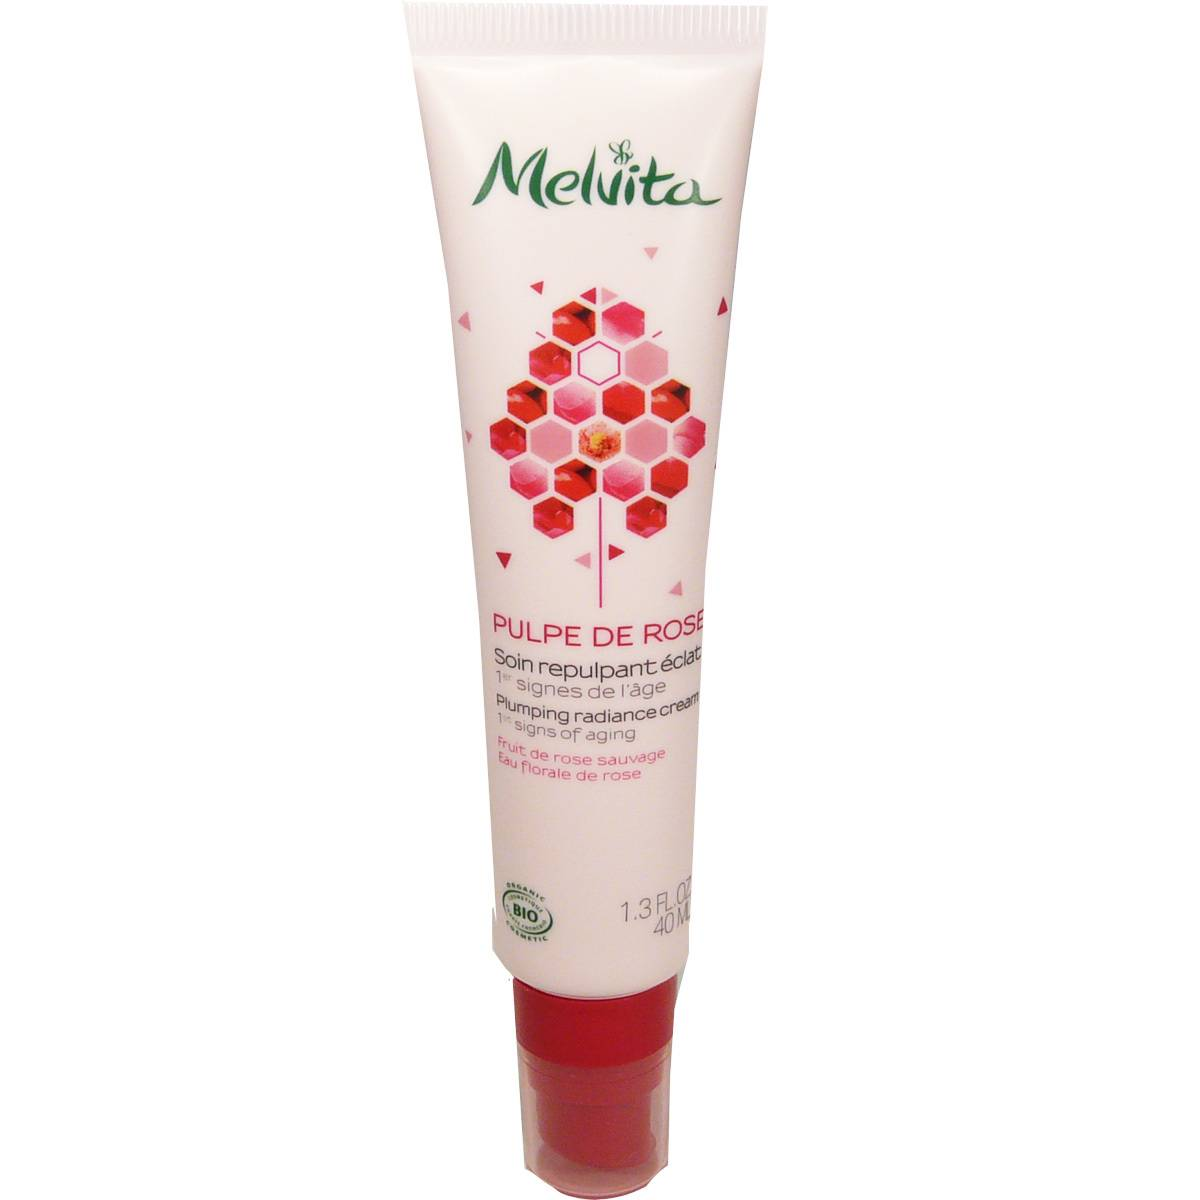 Melvita soin repulpant pulpe de rose 40 ml anti-age